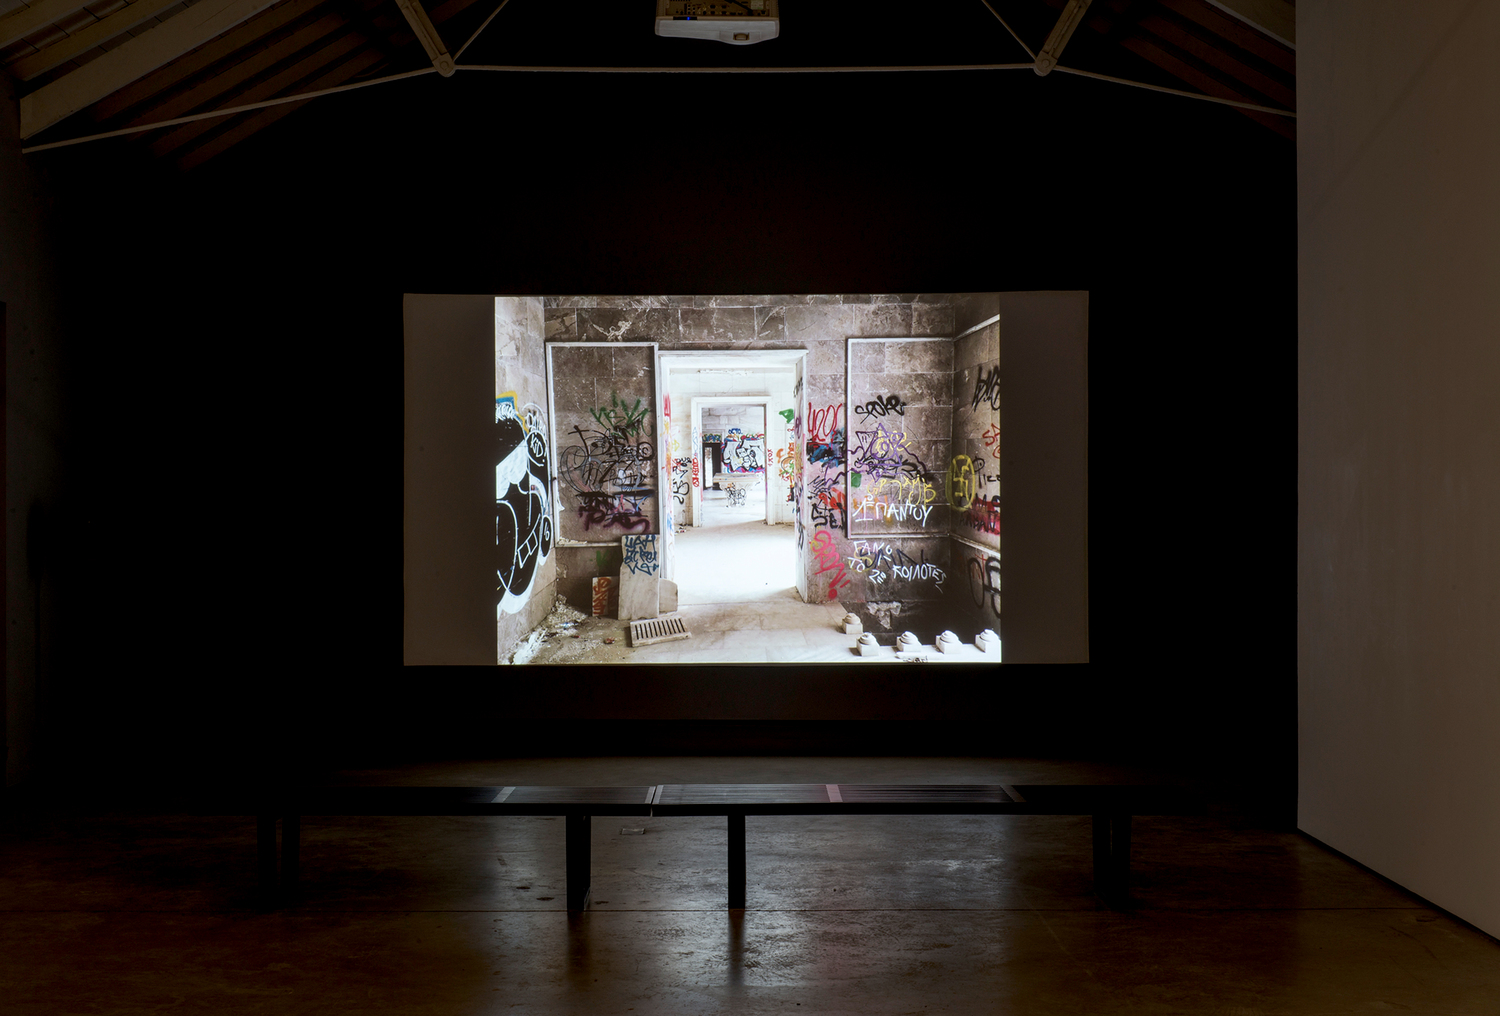 Installation view, Fall into Ruin, The Modern Institute, Osborne Street, Glasgow, 2017